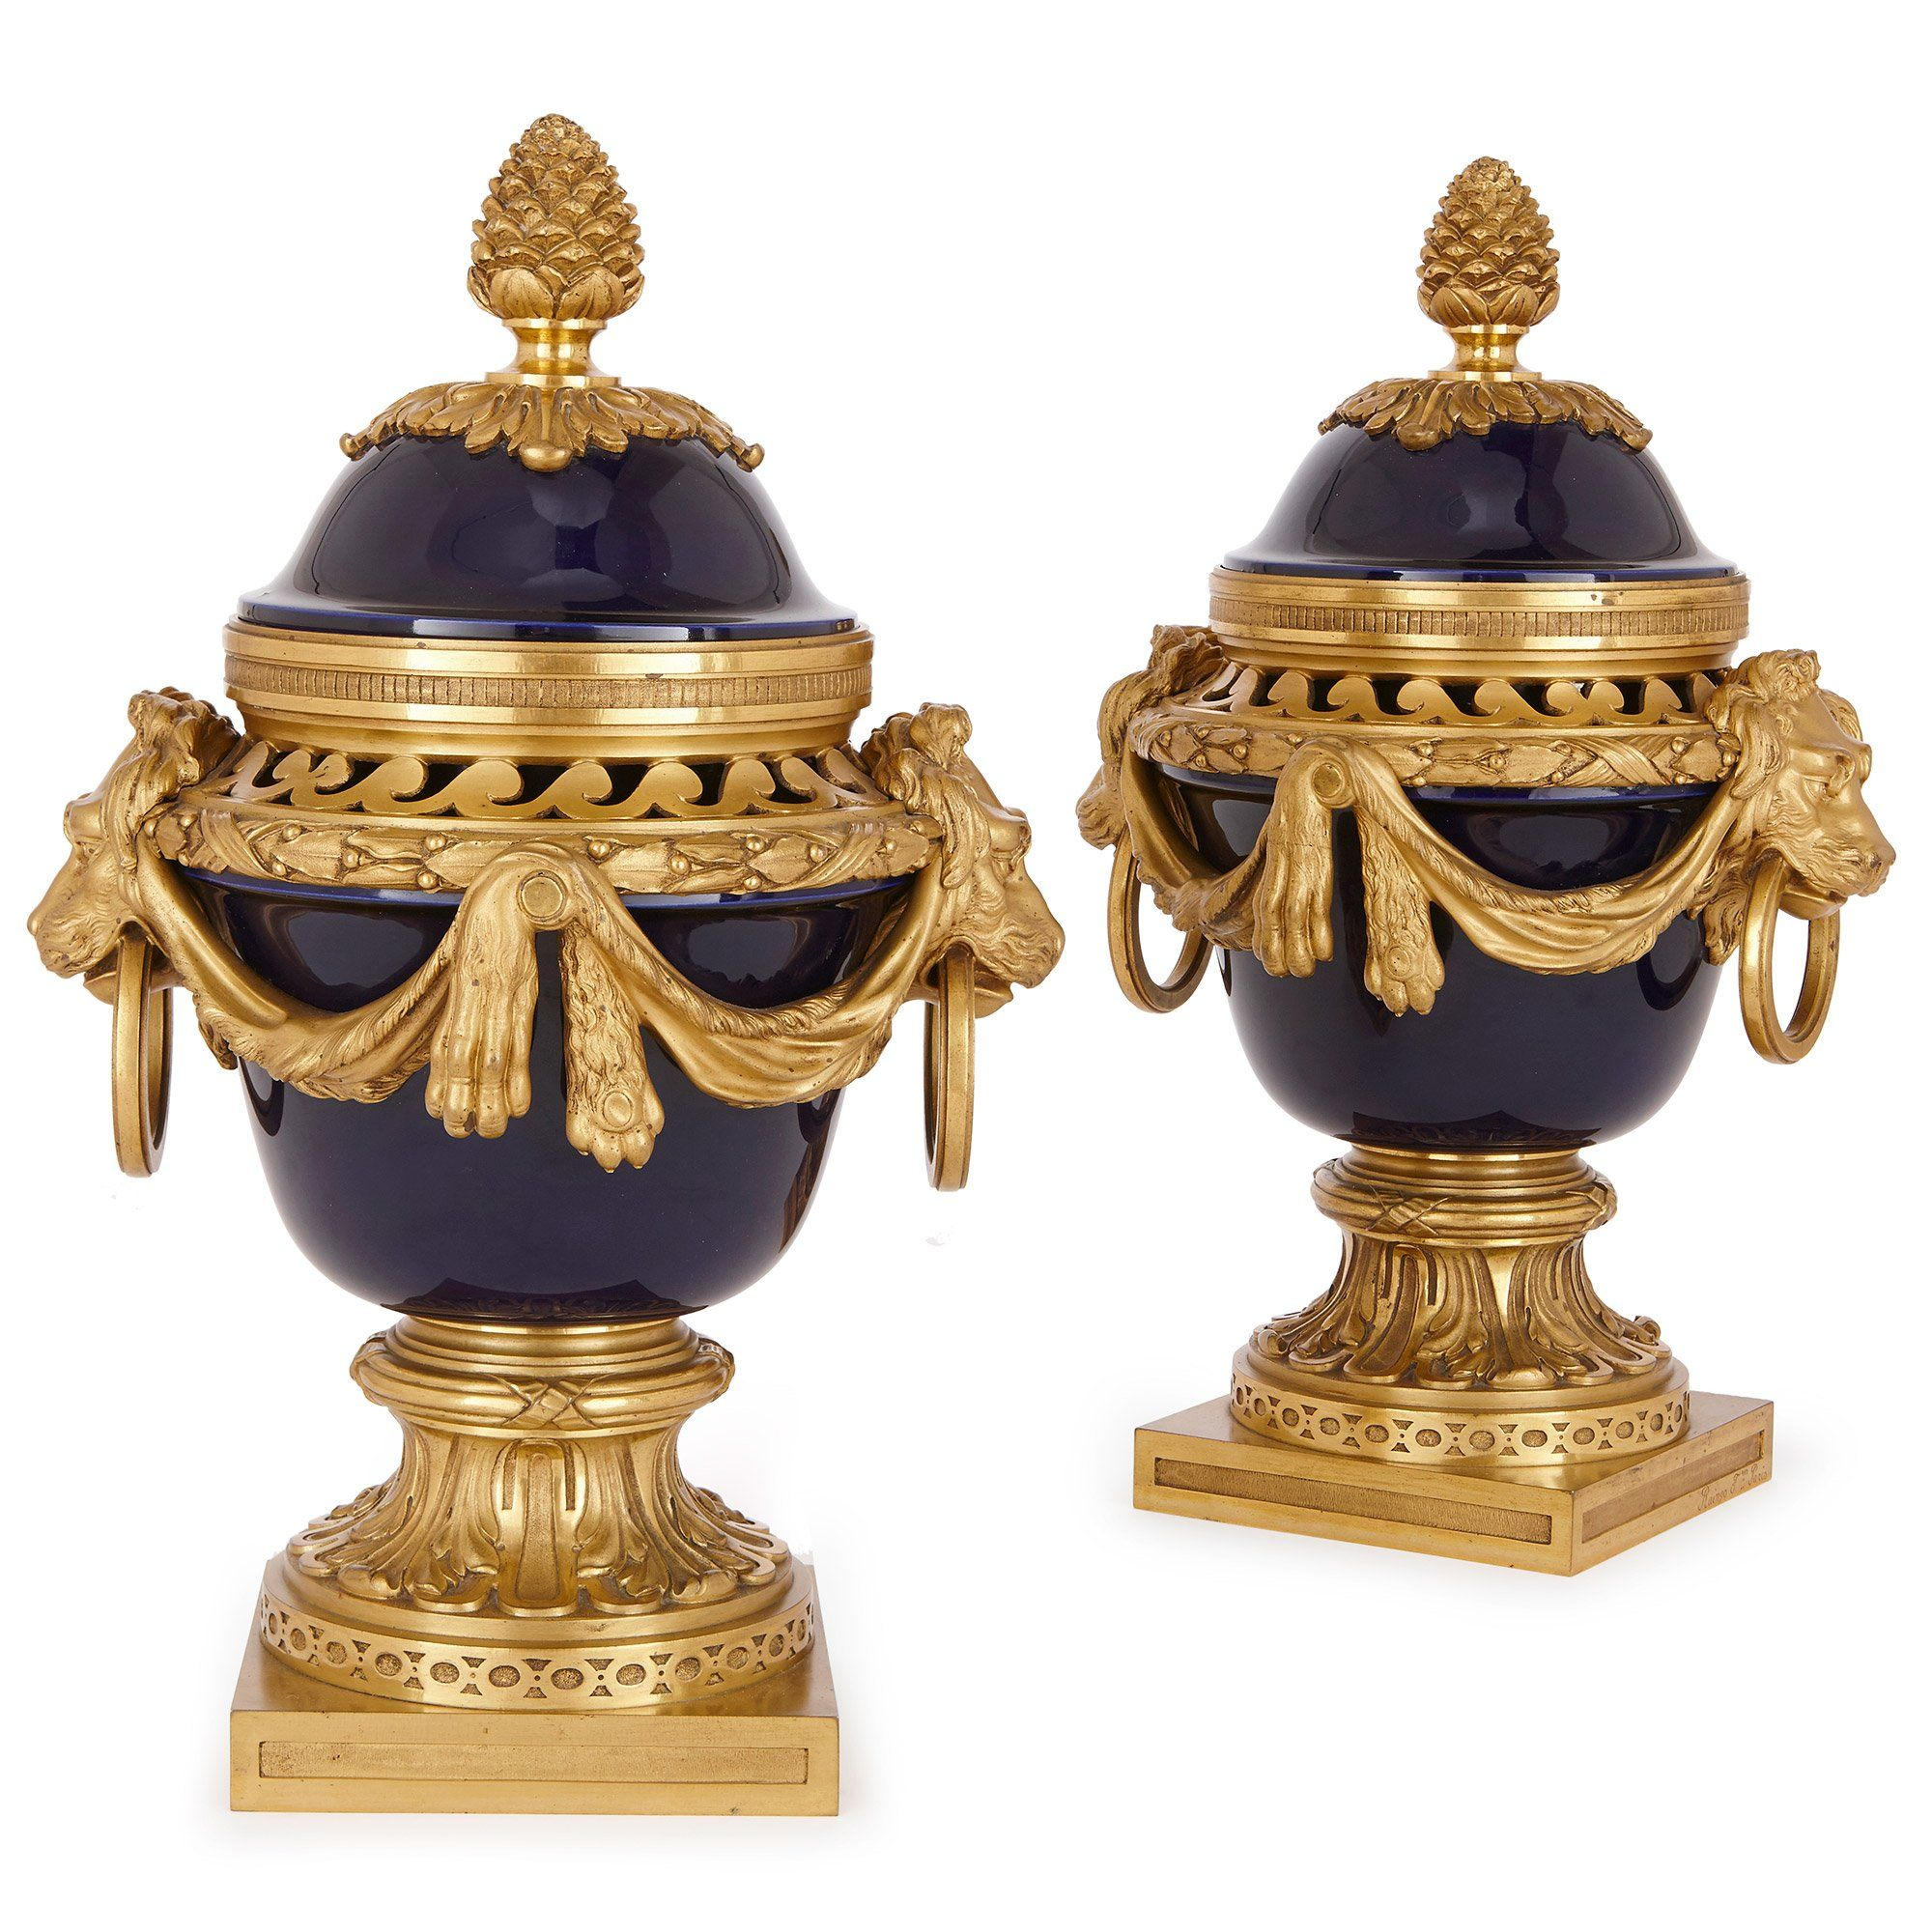 Pair Of Antique Porcelain And Ormolu Urns By Raingo Freres